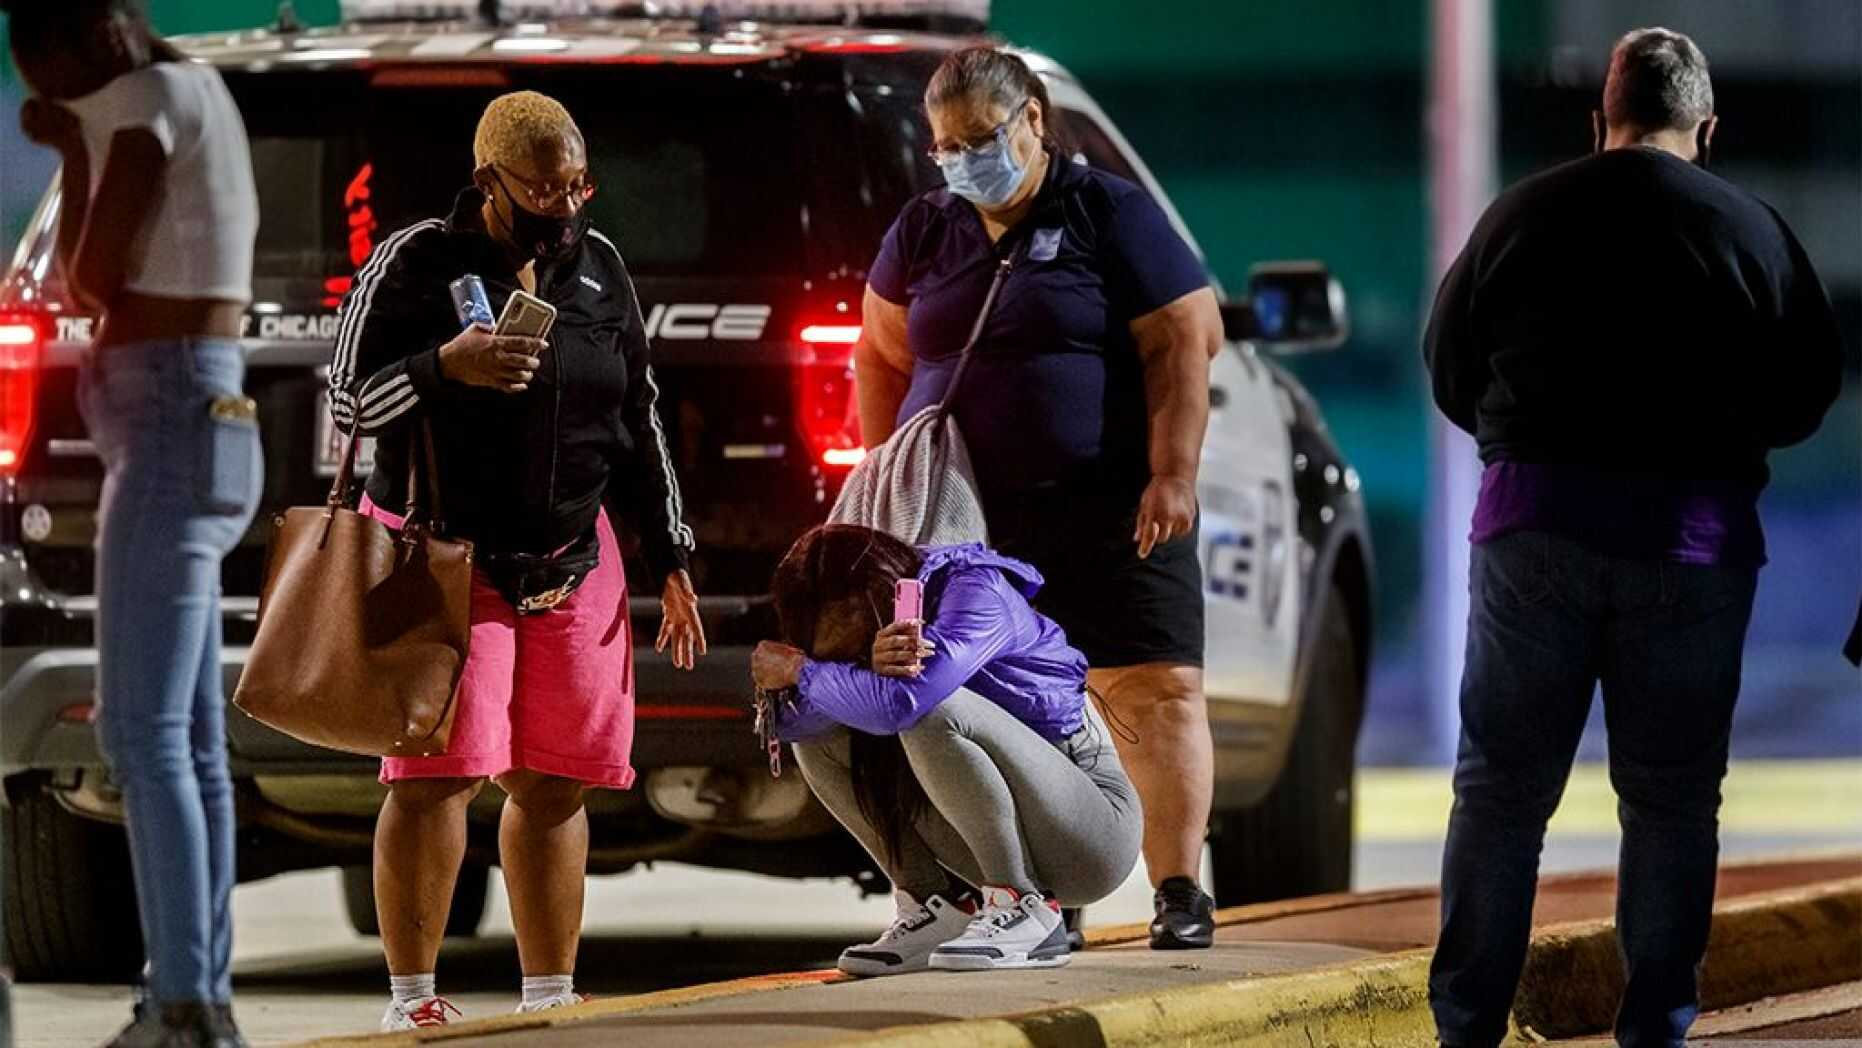 A woman kneels on the ground outside the University of Chicago Medicine's Comer Children's Hospital where an 8-year-old girl was taken after being killed in a shooting during the Labor Day weekend Monday, Sep. 7, 2020, in Chicago. (Armando L. Sanchez/Chicago Tribune/Tribune News Service via Getty Images)